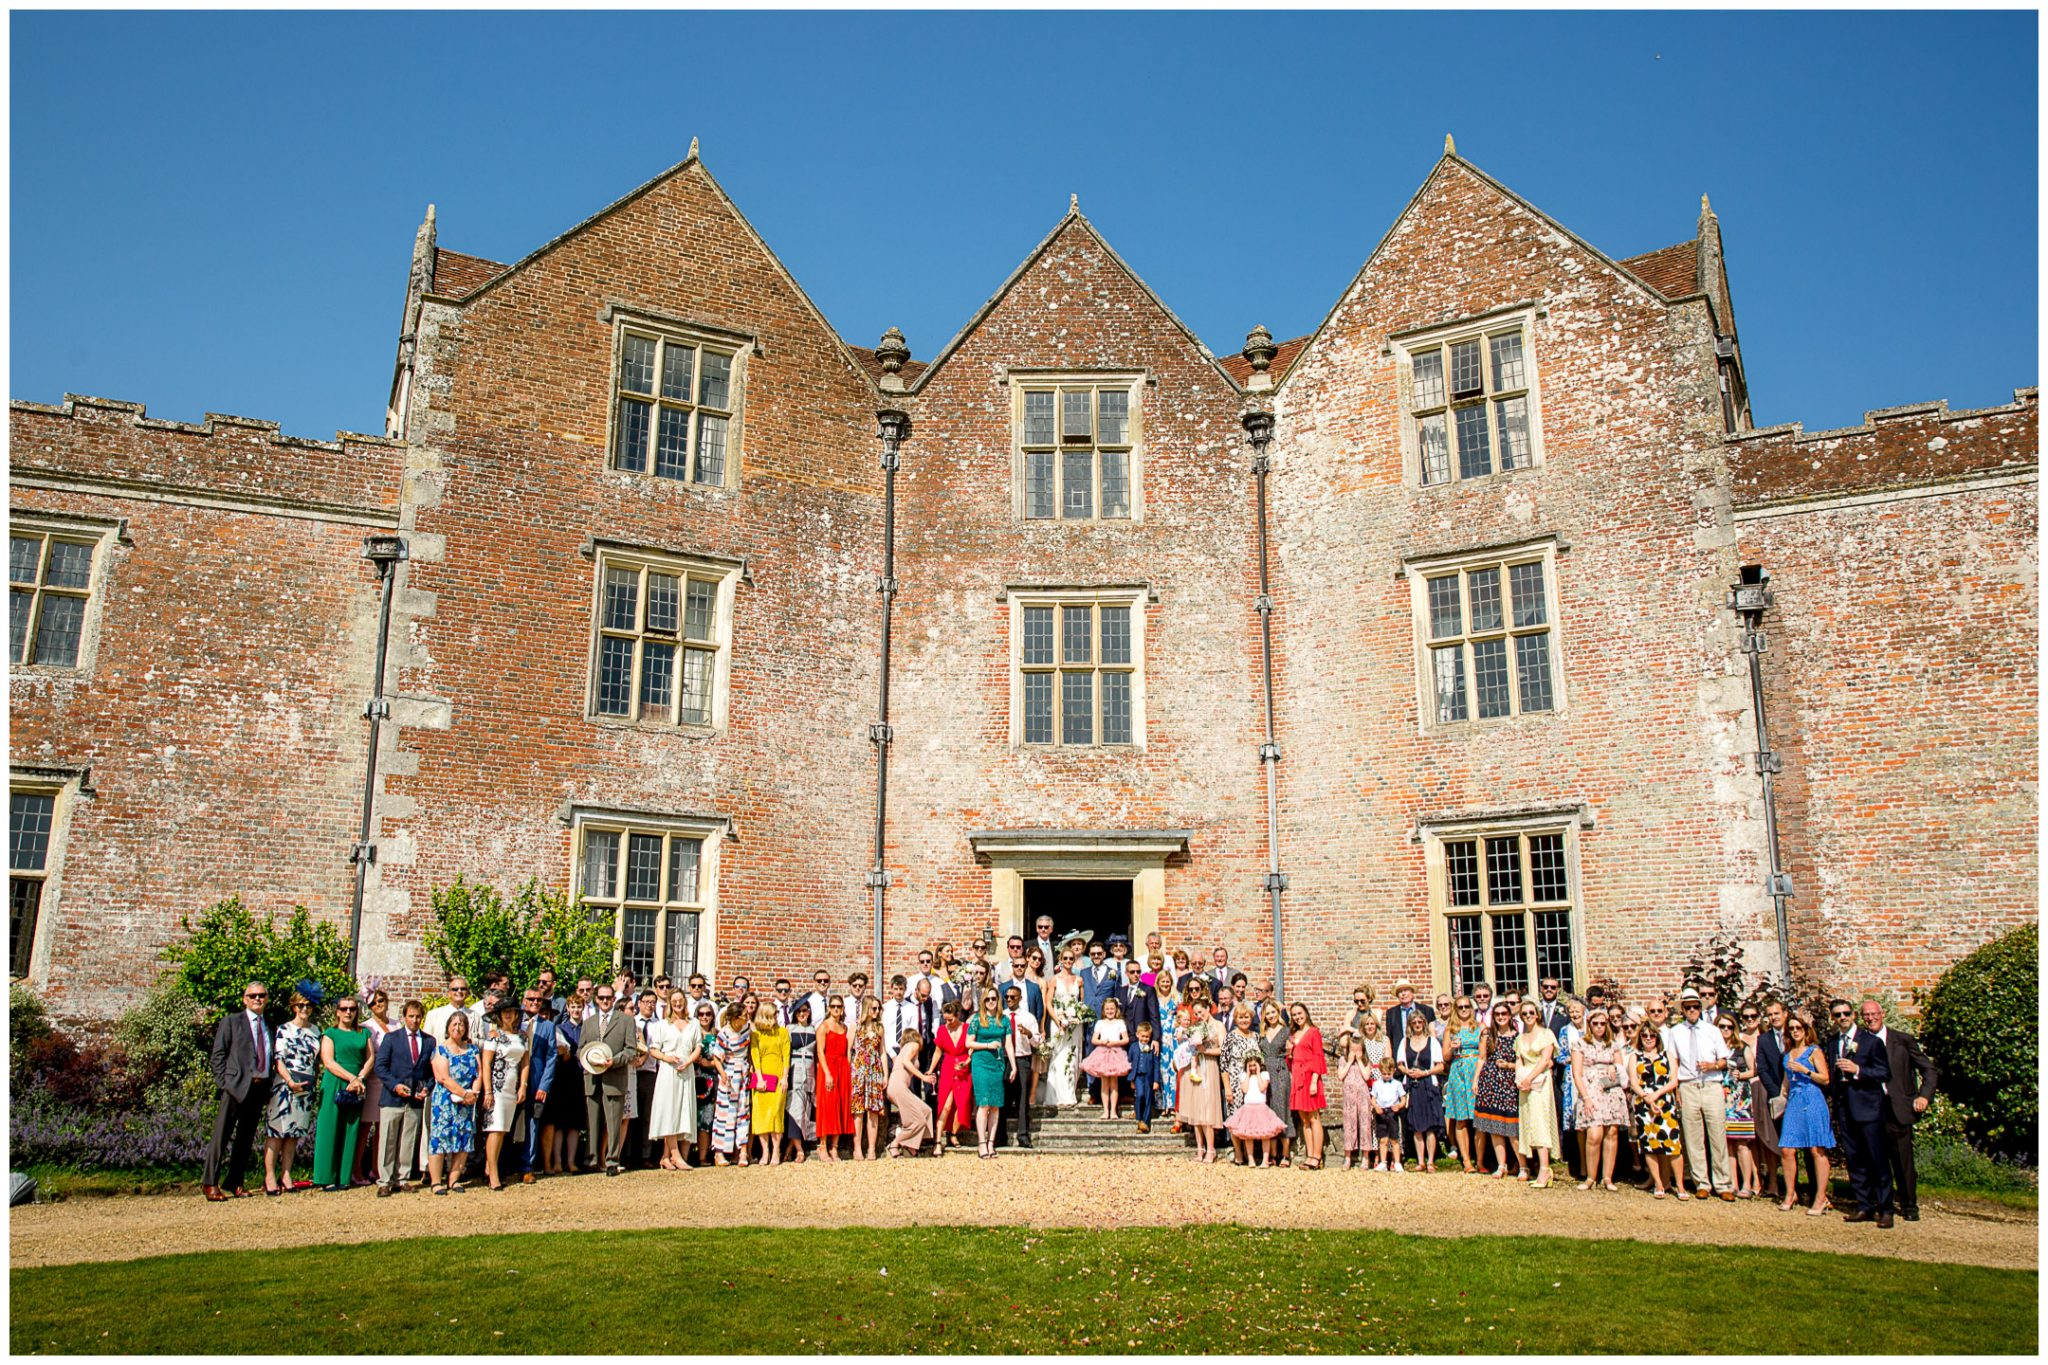 A large group photo of everyone outside the Redlynch wedding venue in the sunshine